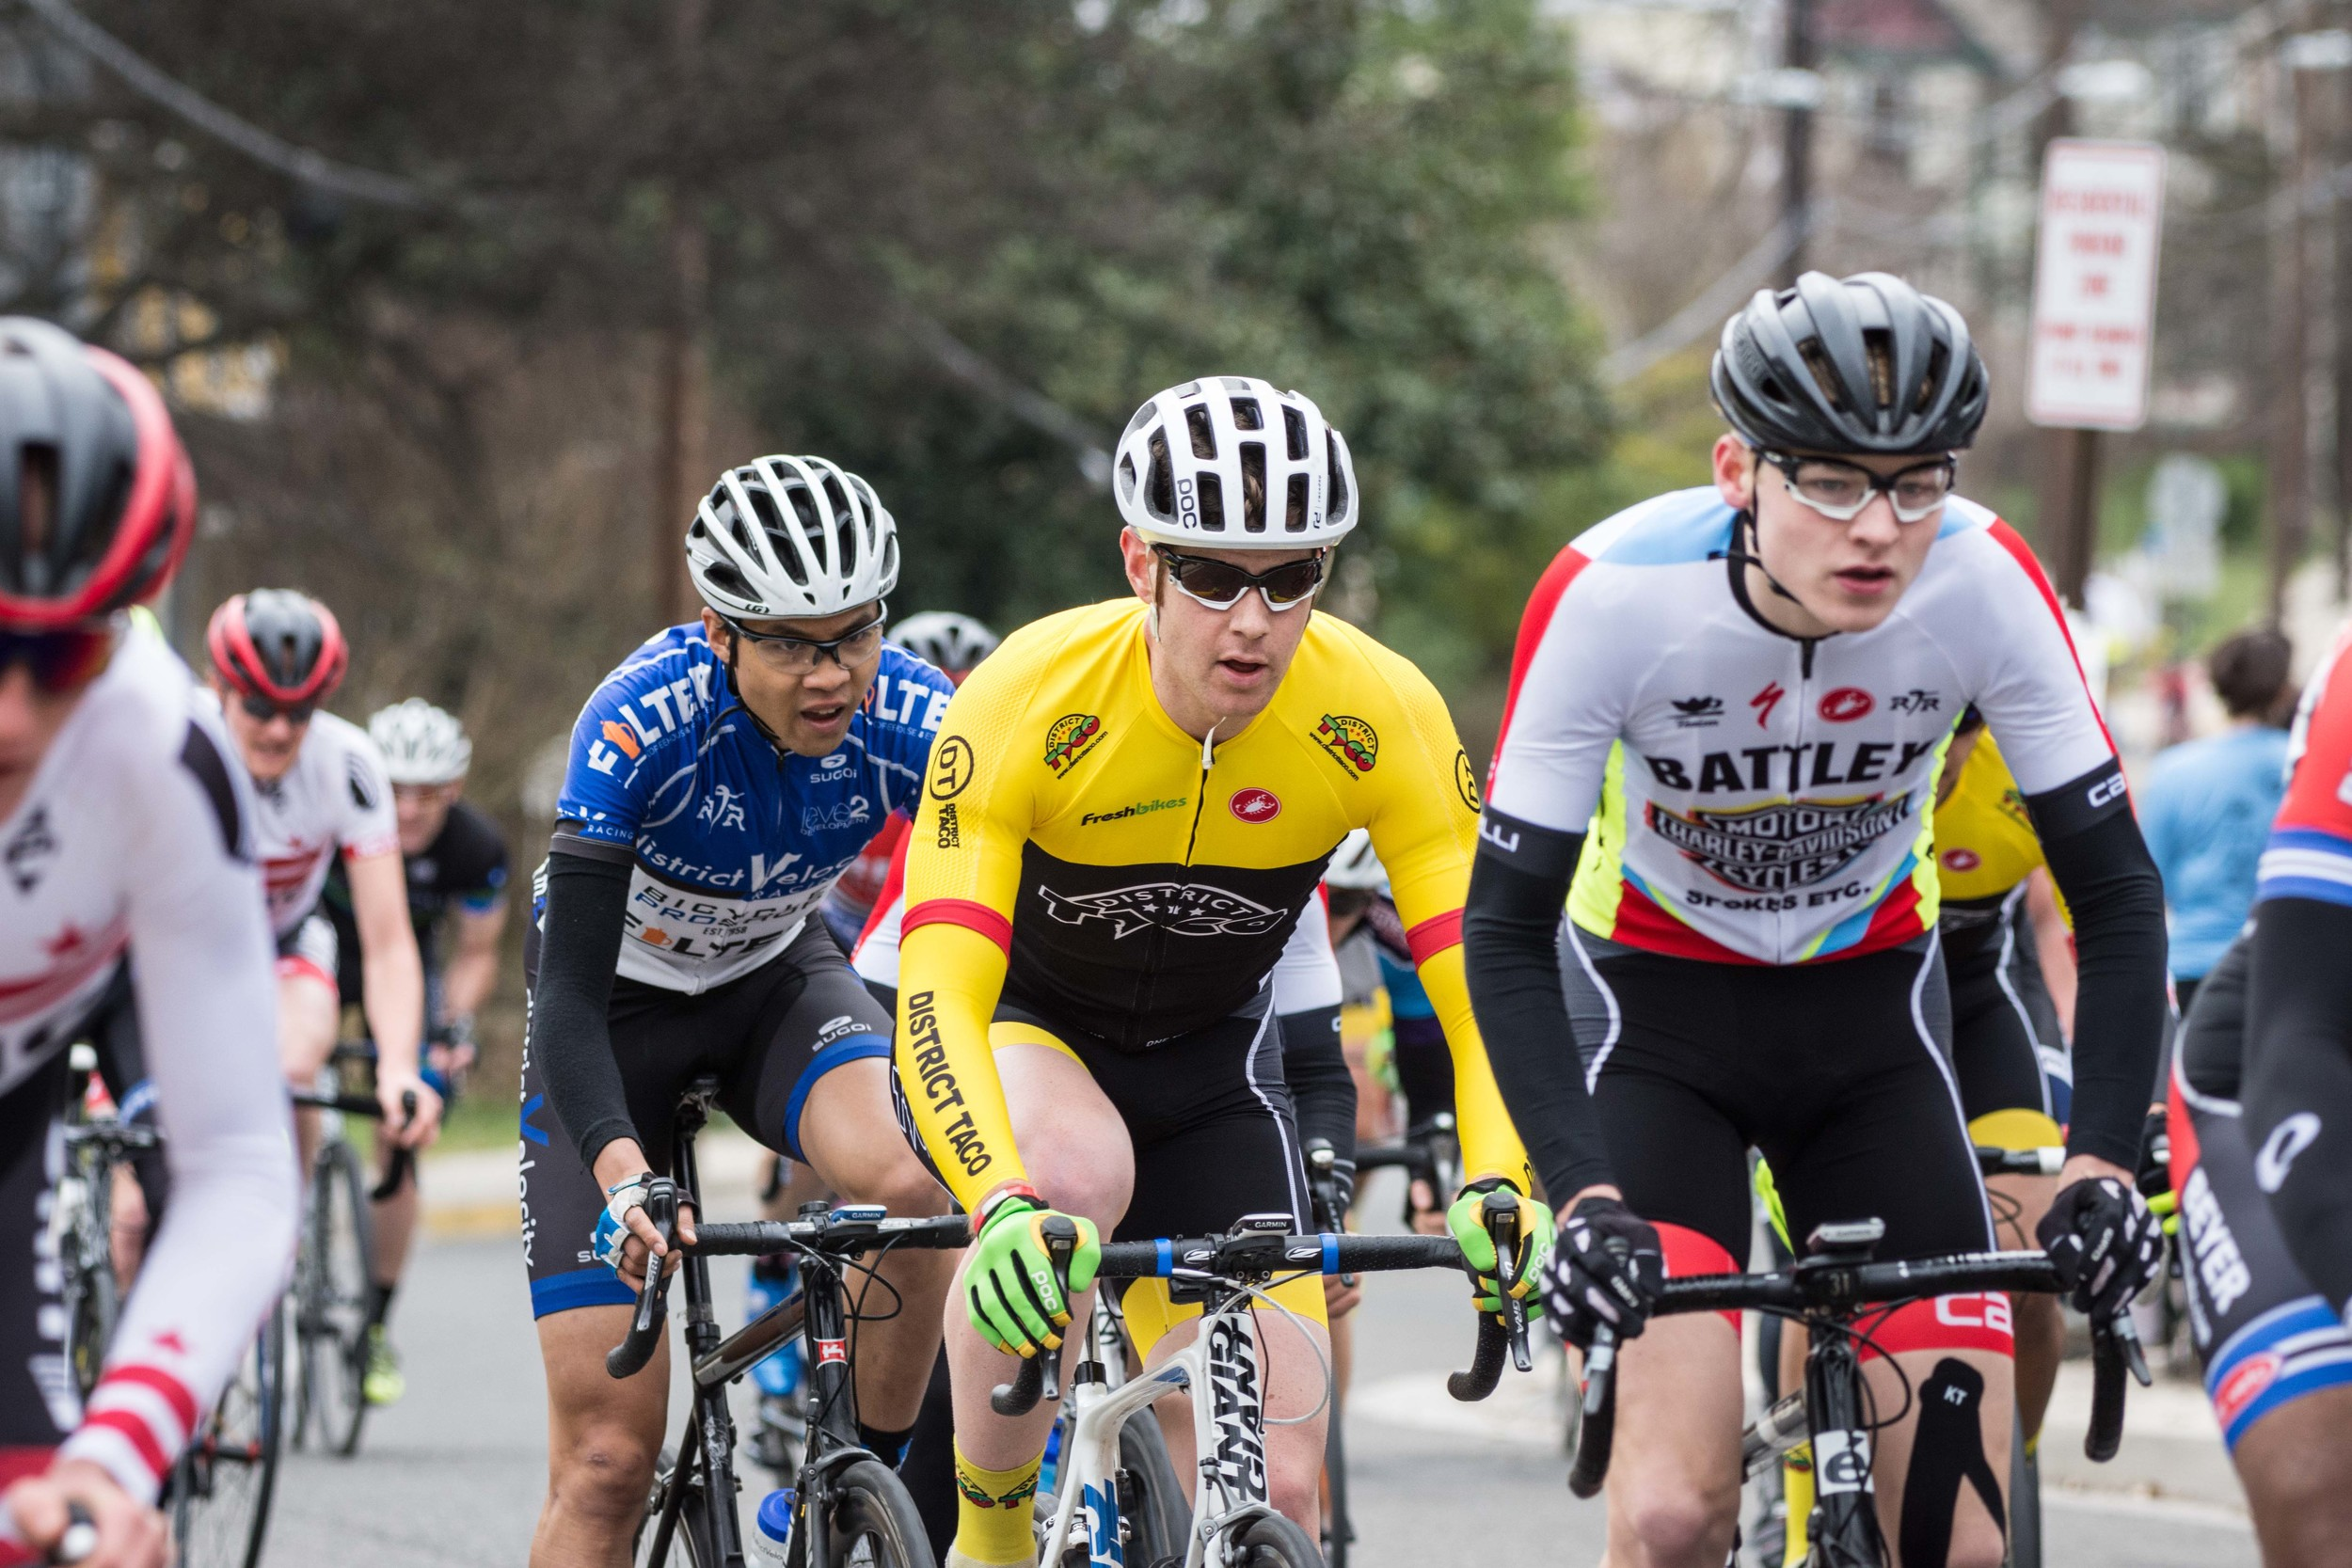 20160312110812 Route One Rampage Criterium 0607.jpg